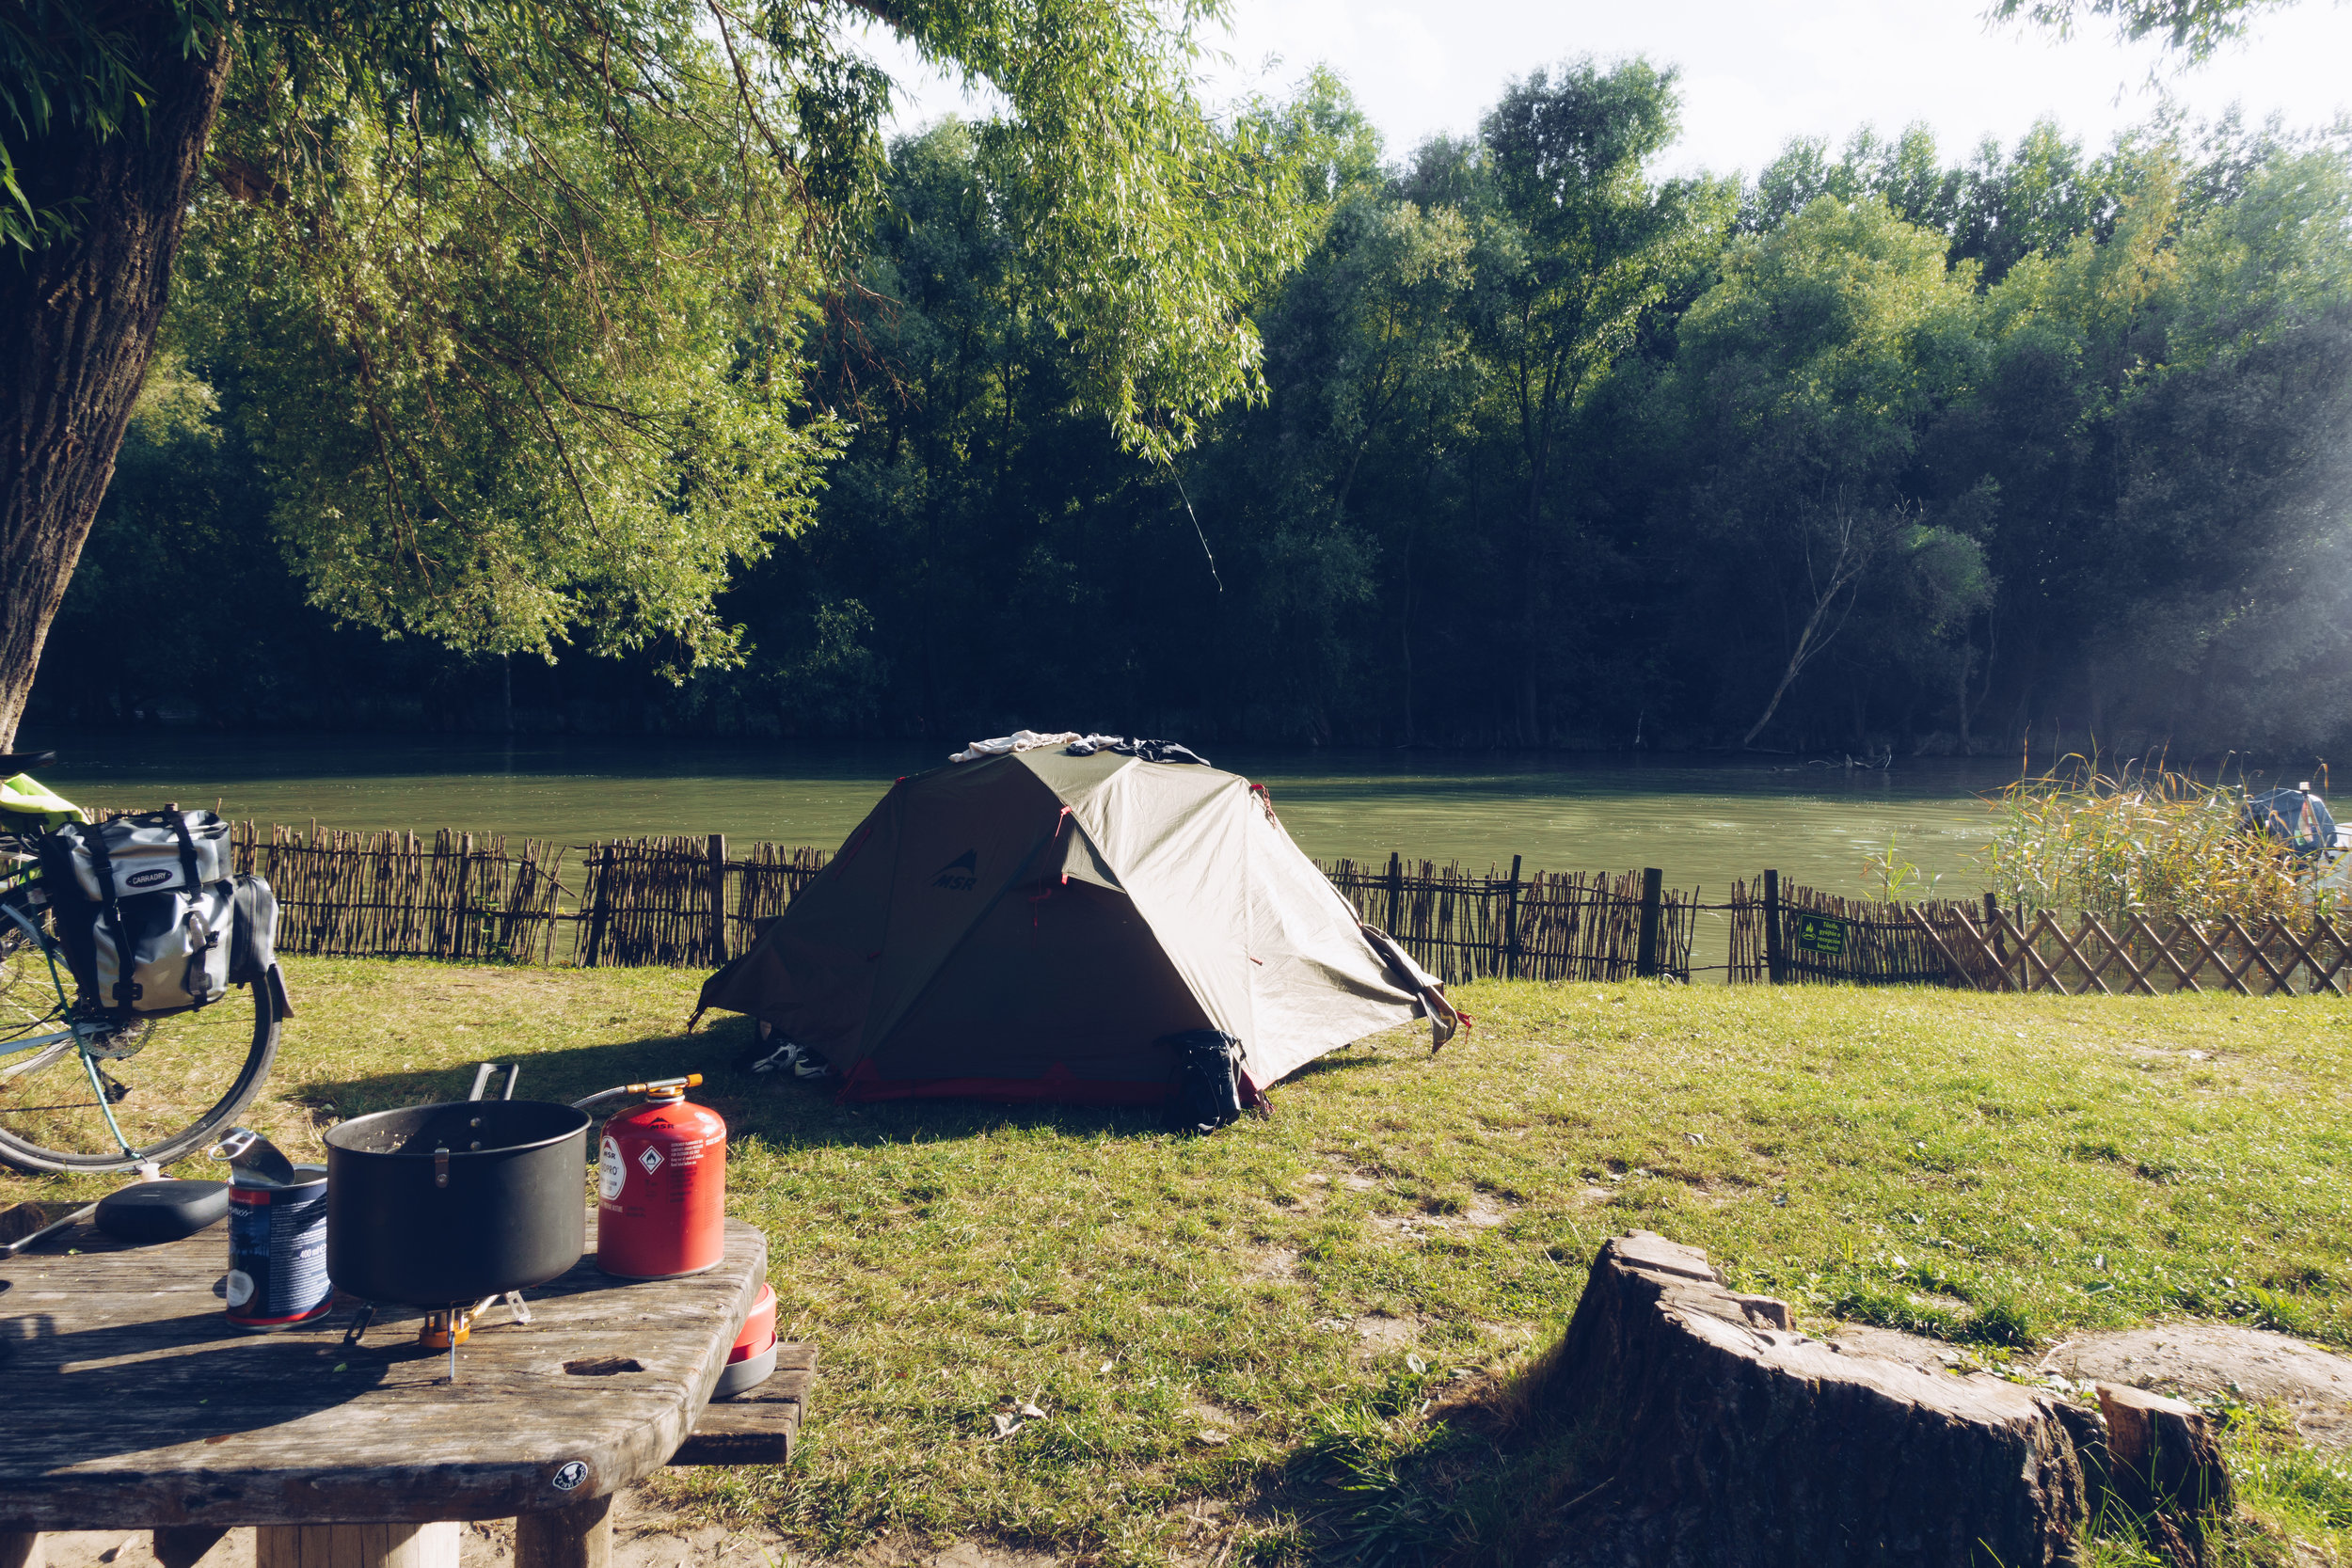 Camping on the Duna river, Hungary